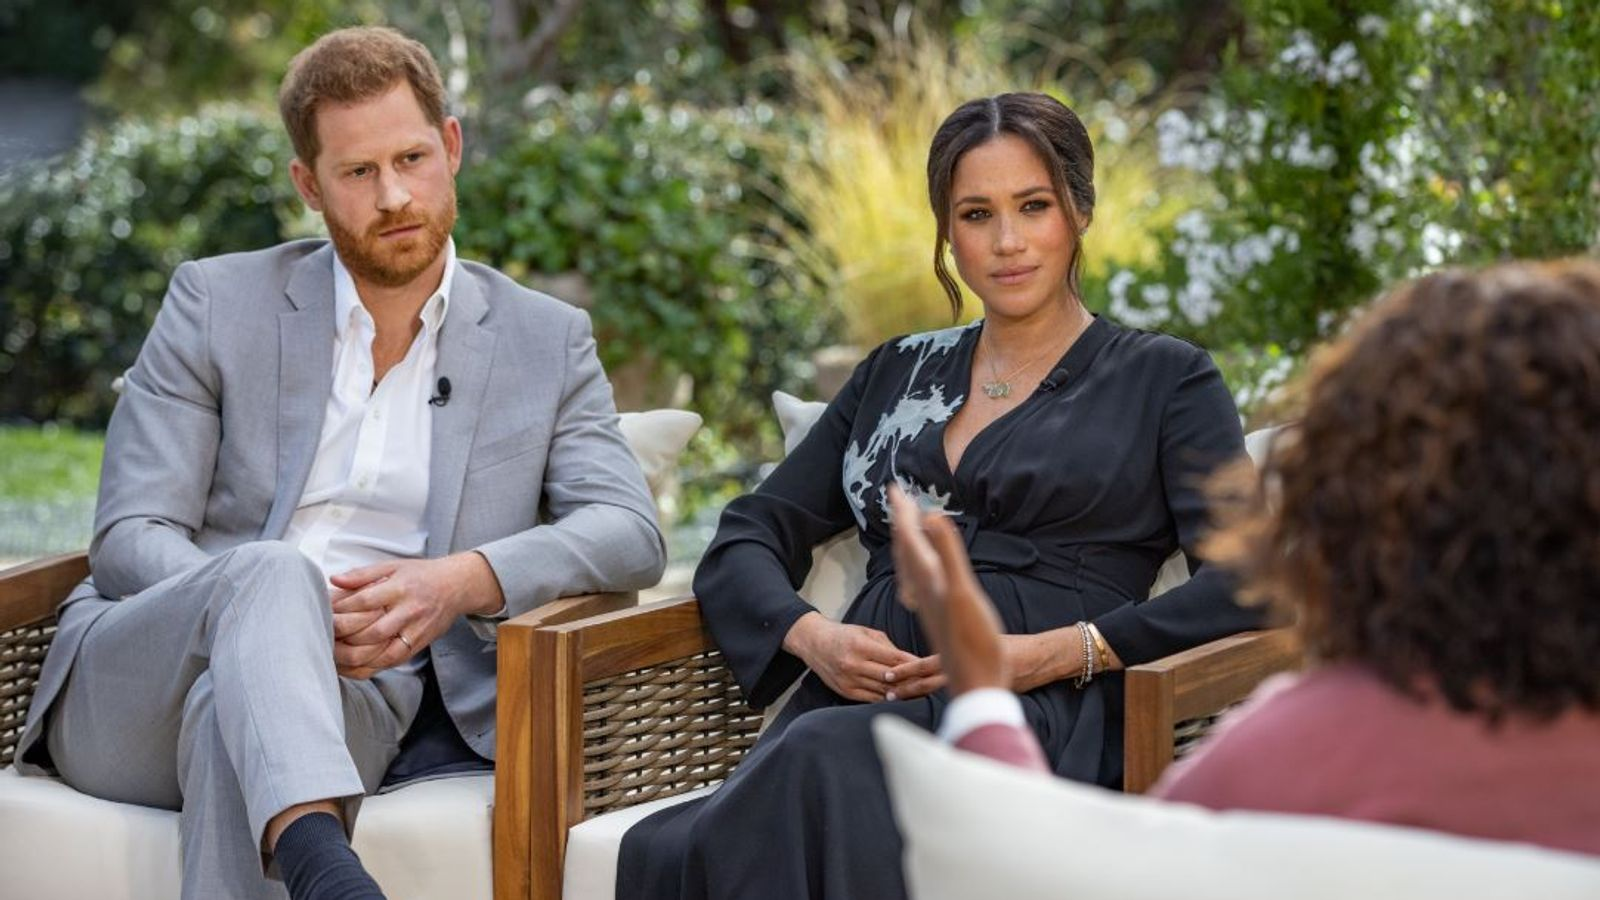 A friend of Harry said that the Harry and Meghan opera interviews would not have aired if Prince Philip had died on US News